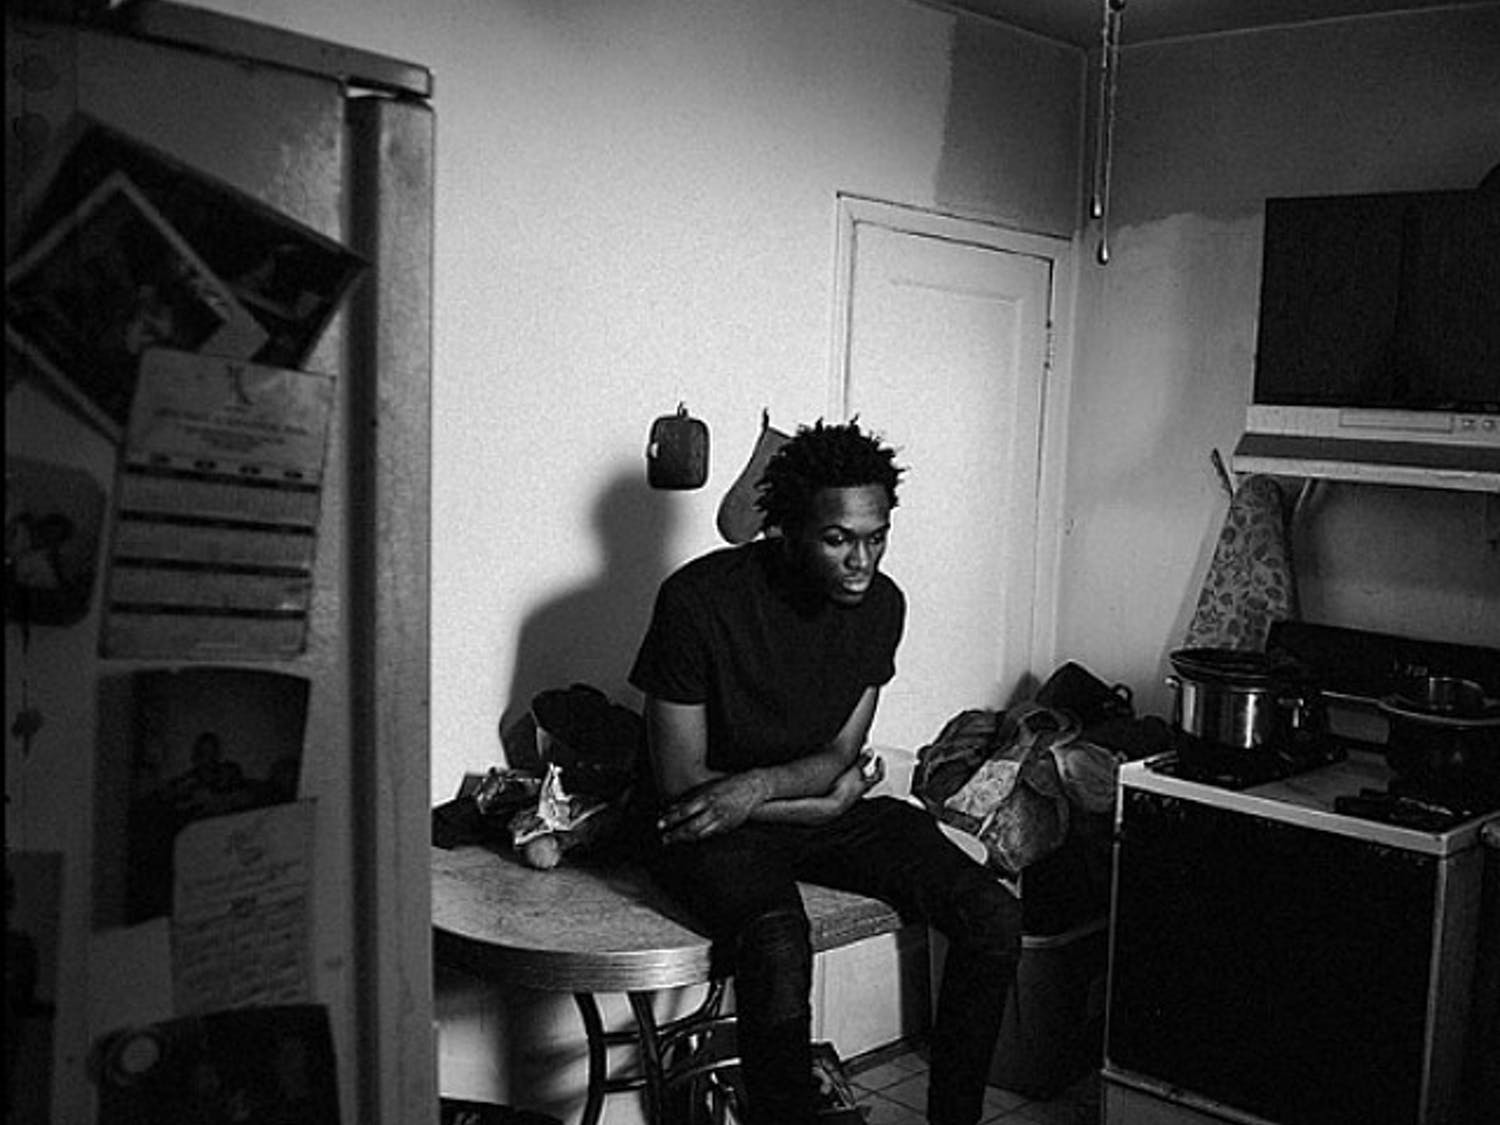 Saba's storytelling and innovative flow shine on his excellent sophomore album.